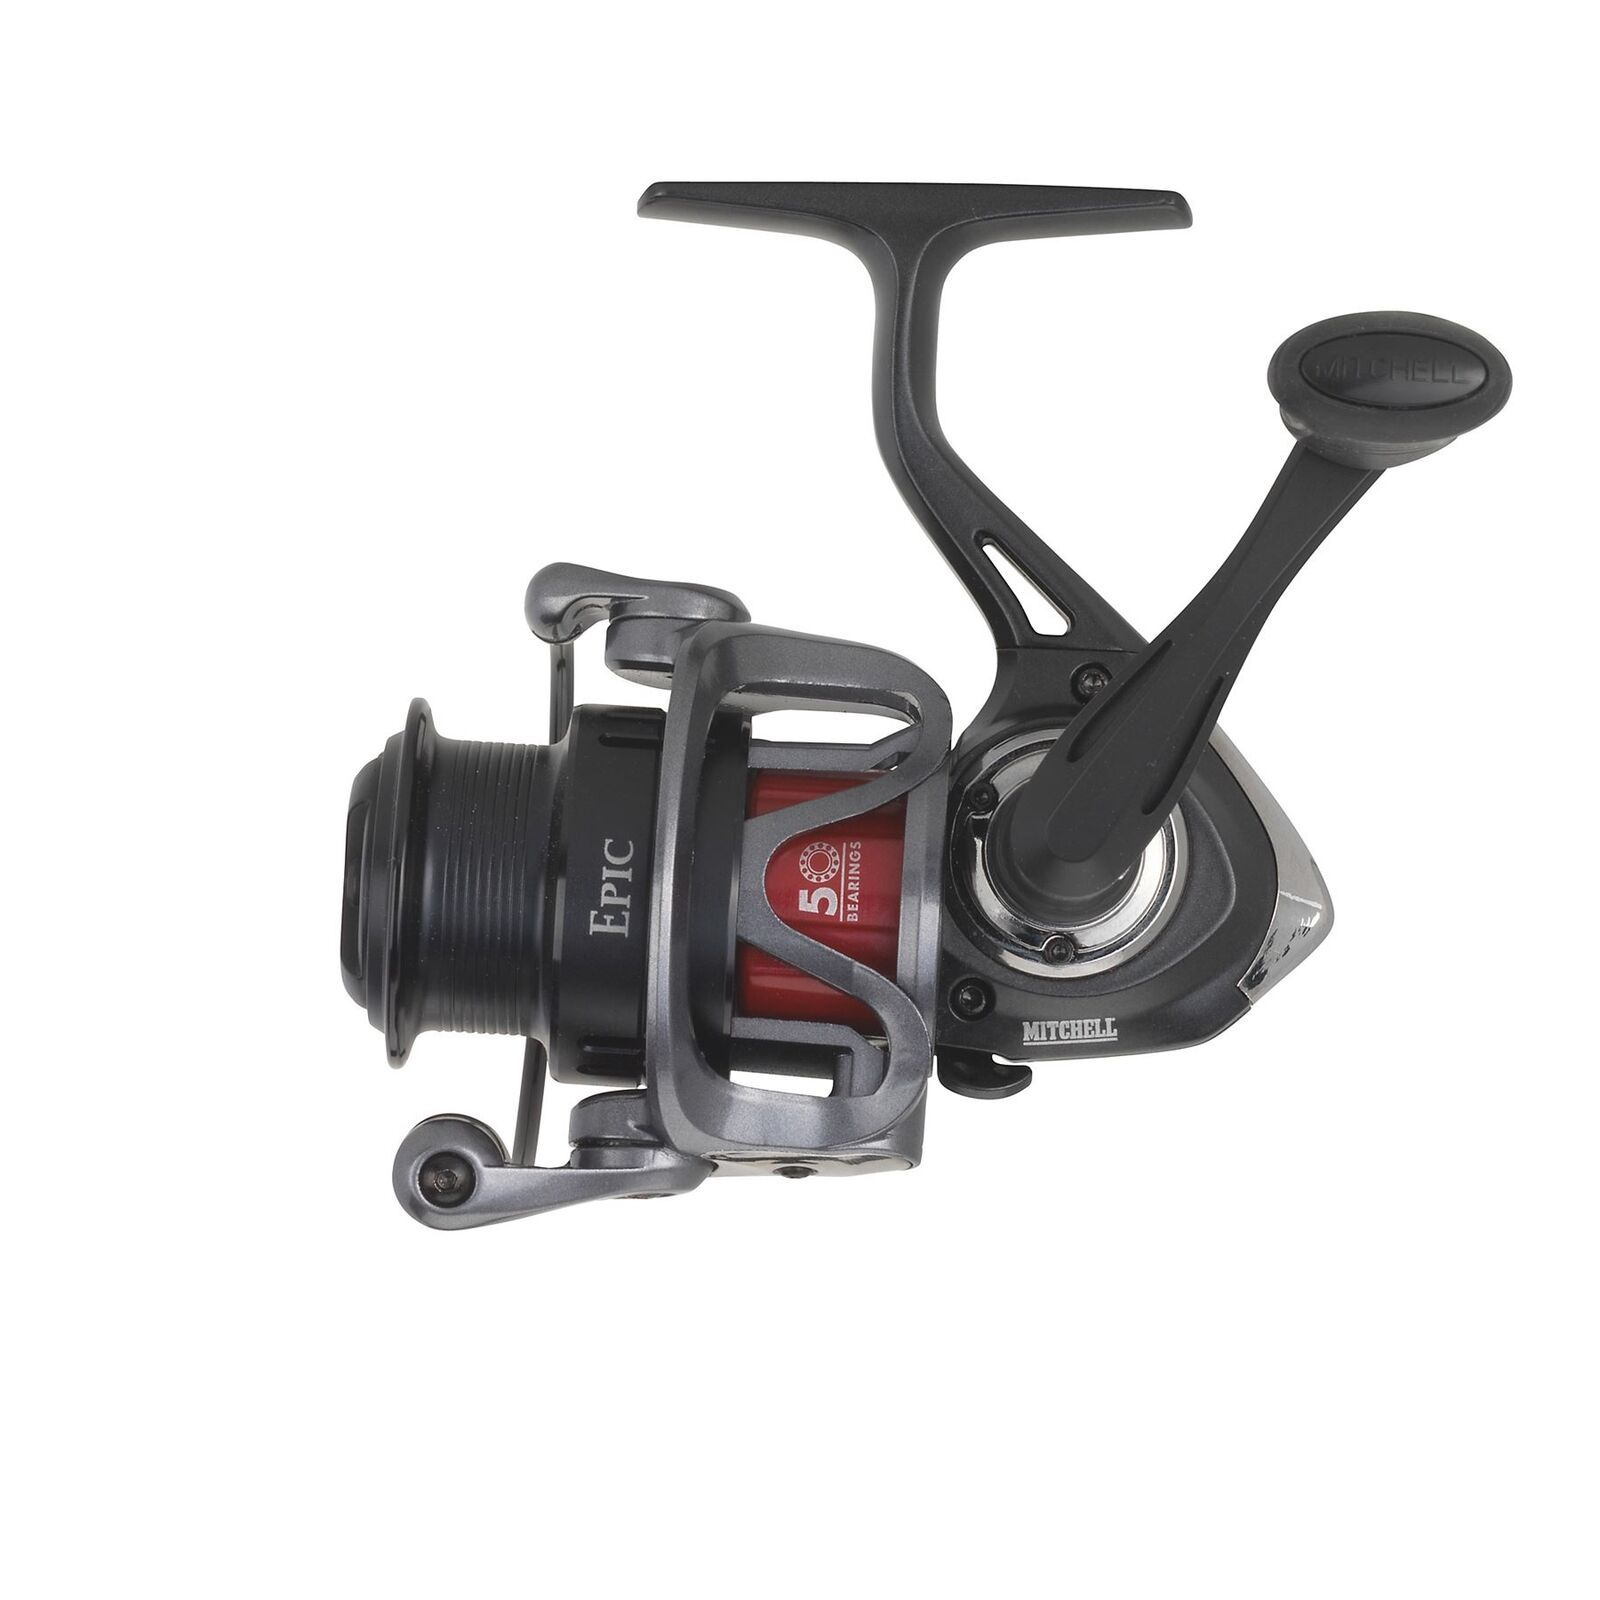 Mitchell Epic 2000 FD   Fixed Spool Fishing  Reel  with 100% quality and %100 service